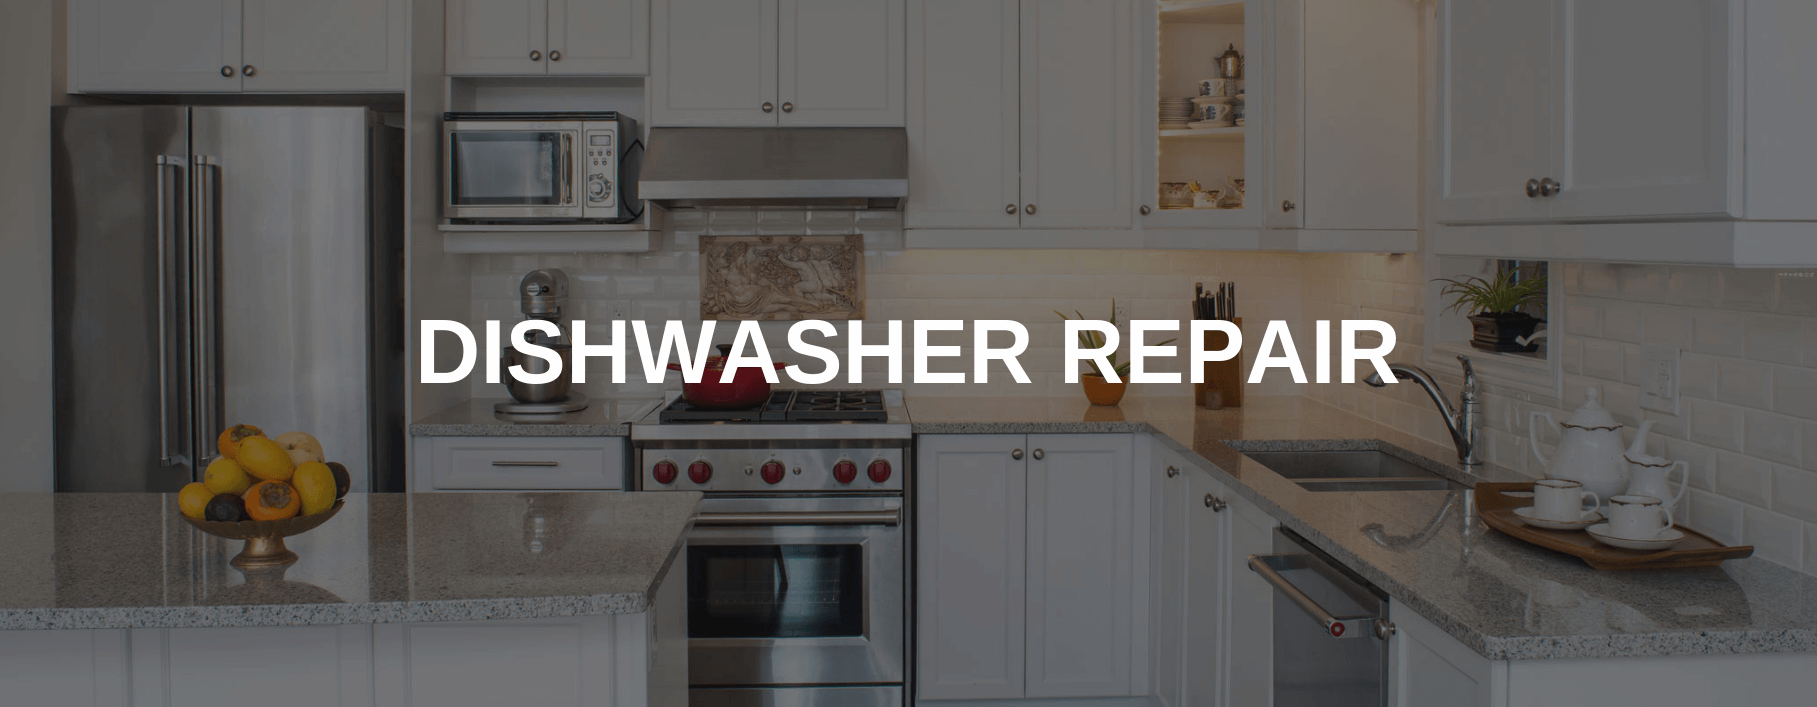 dishwasher repair hillsboro